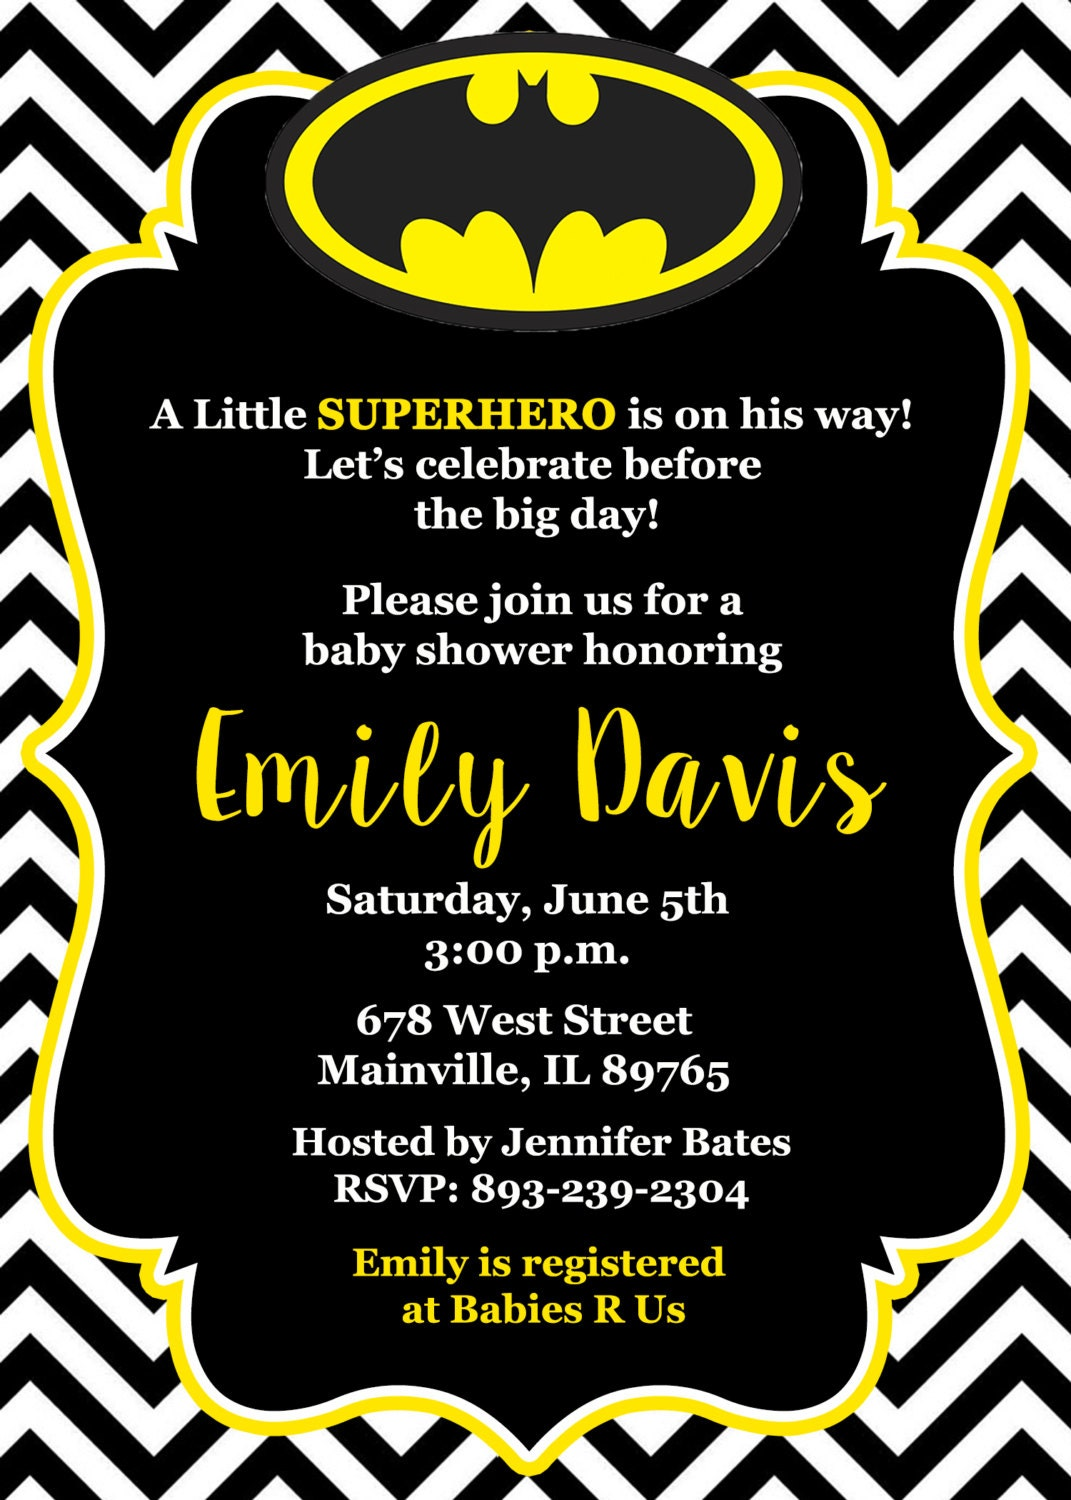 Costume Birthday Party Invitation as amazing invitation design